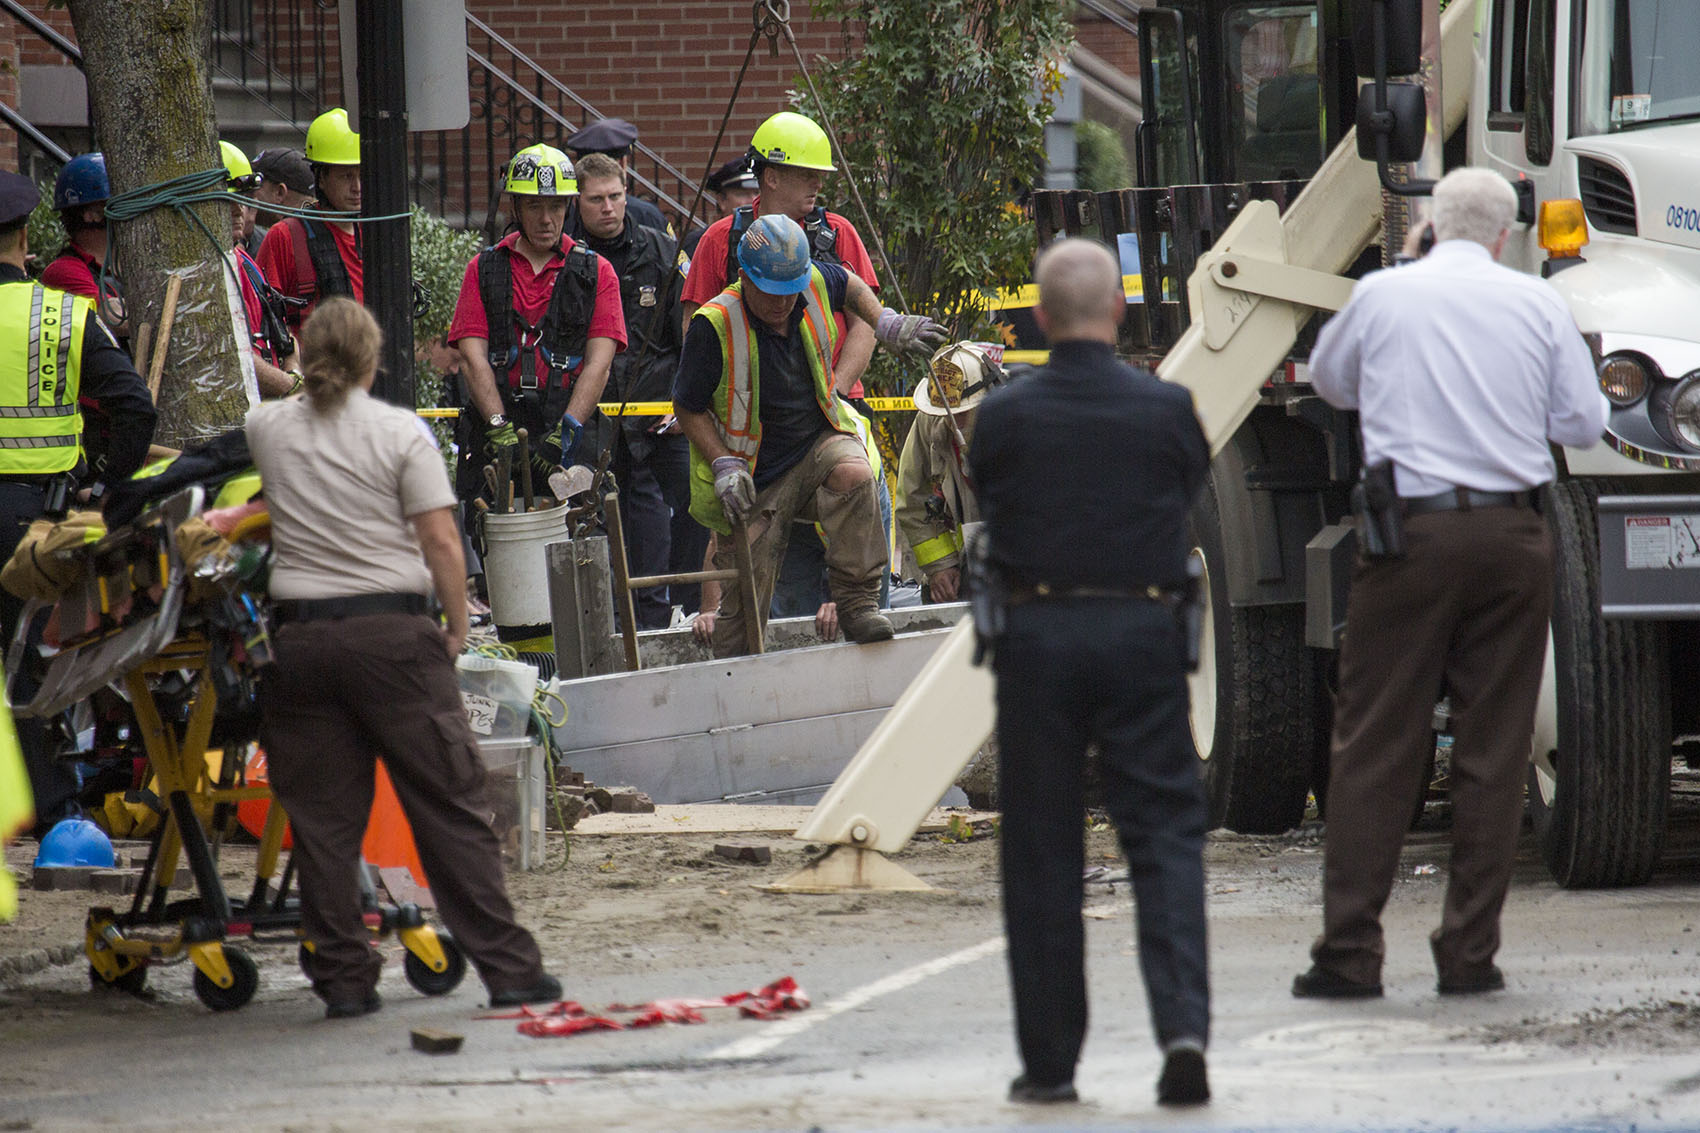 A response team works to recover the bodies of two men who were trapped in a trench during a water main break on Dartmouth Street in Boston's South End Friday. (Jesse Costa/WBUR)